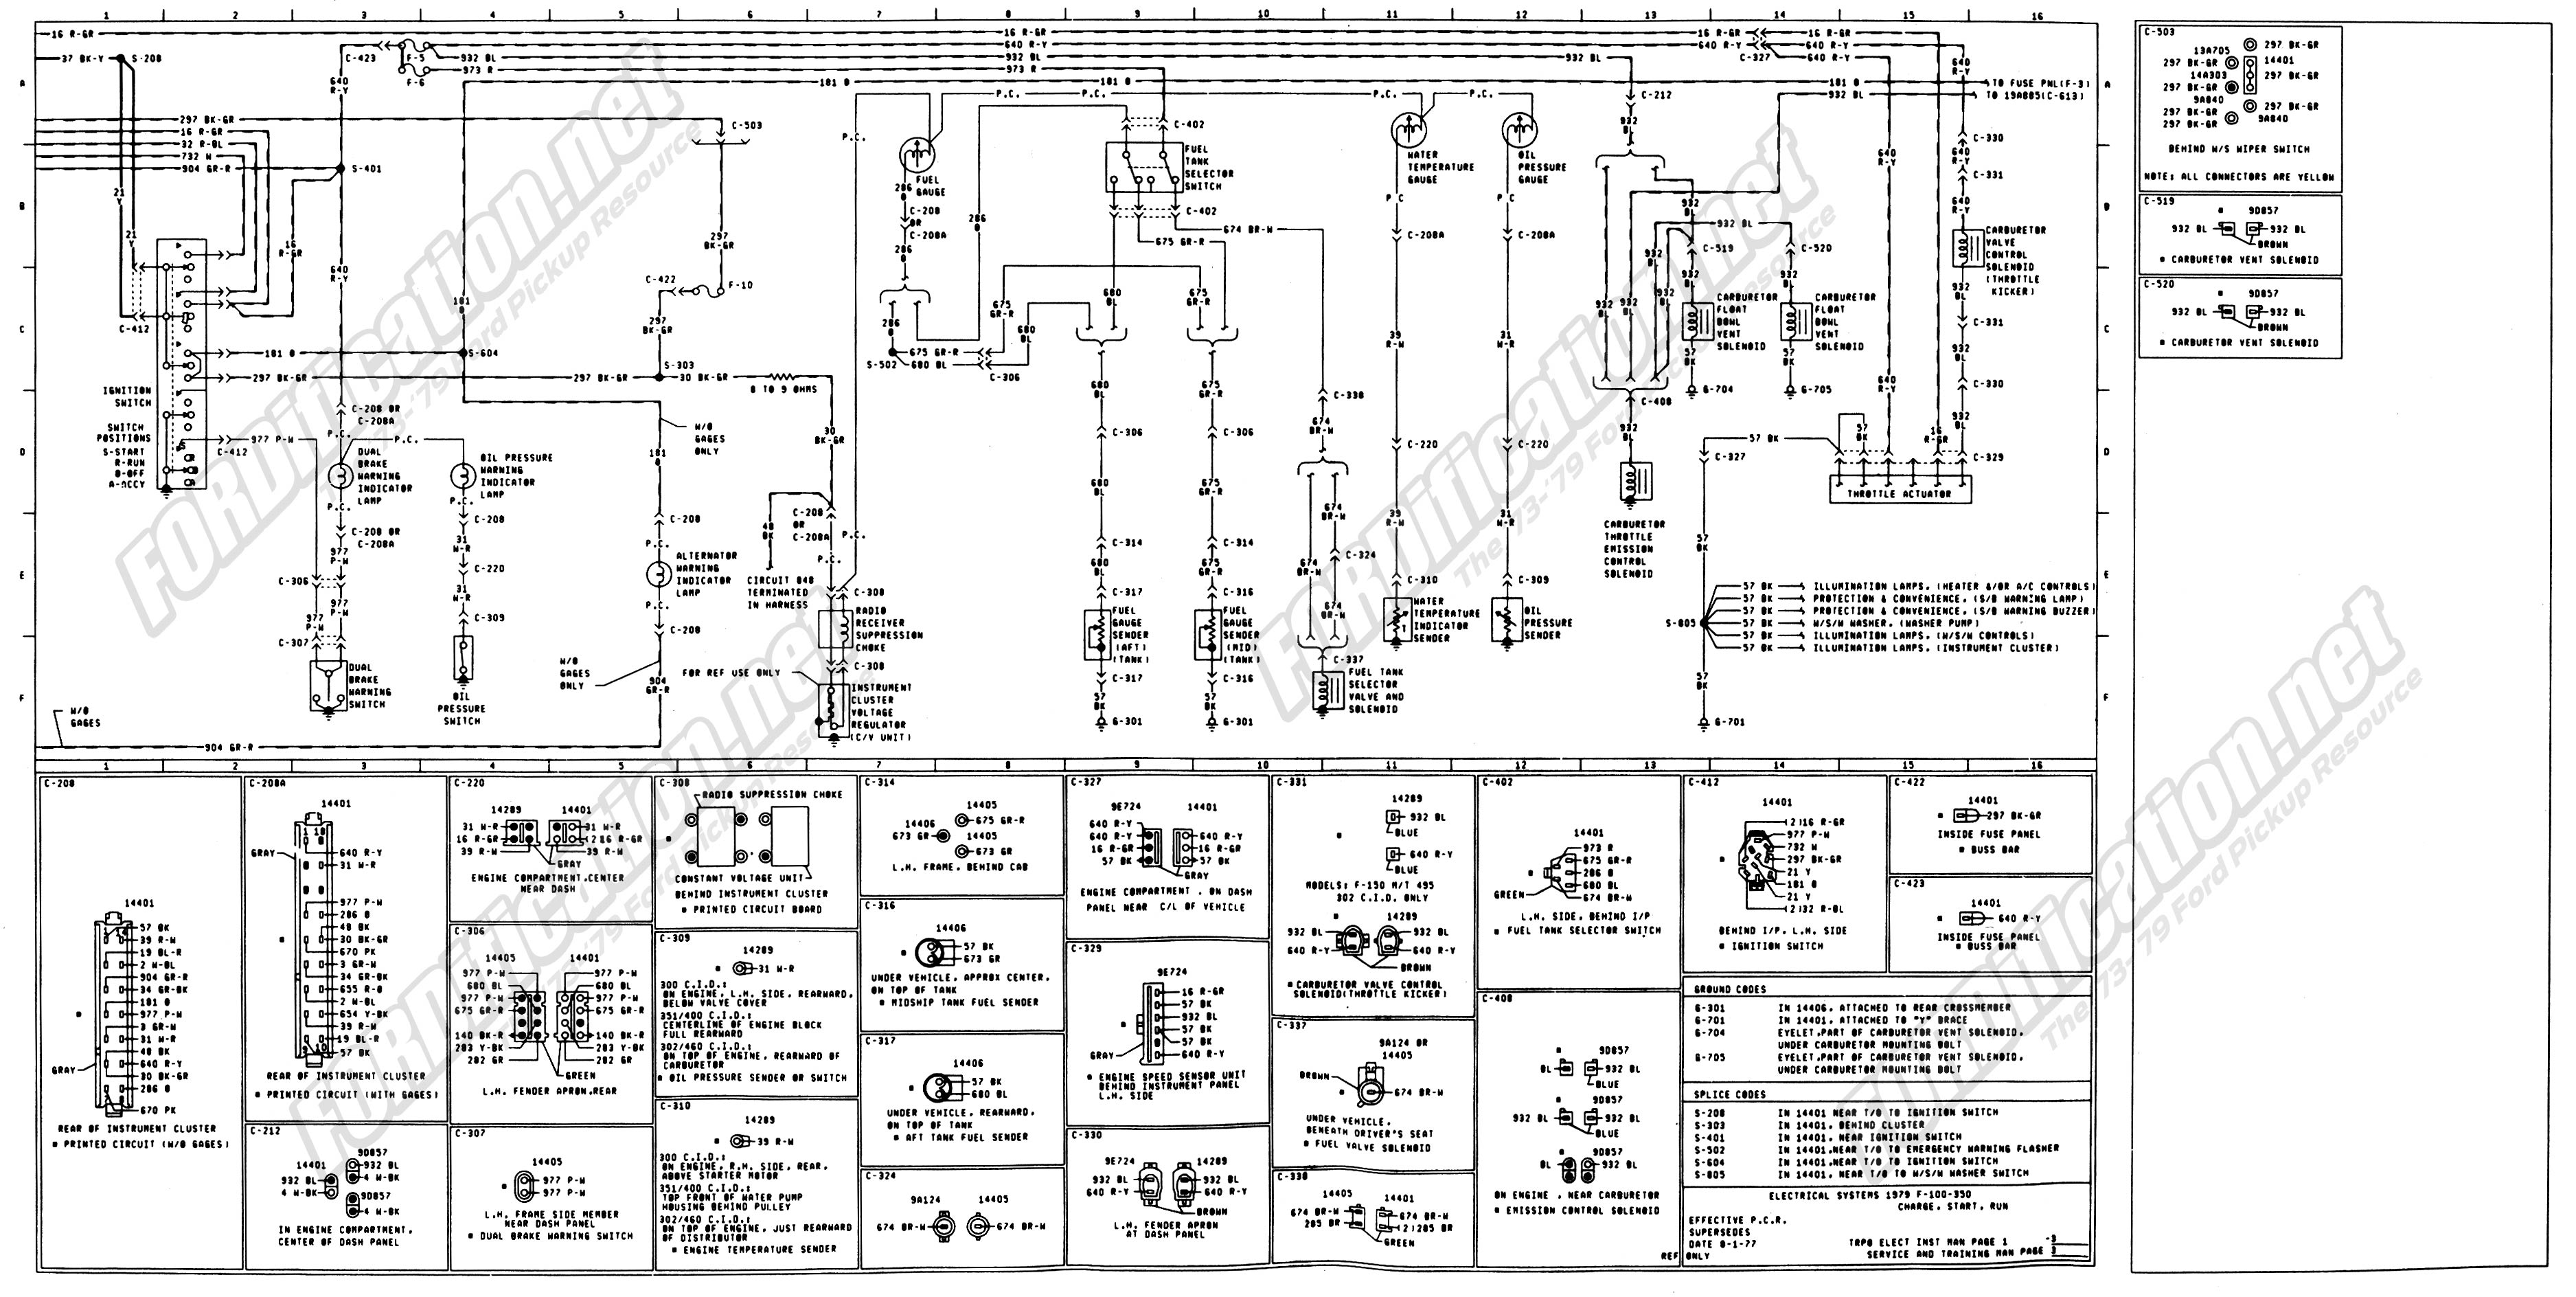 wiring_79master_3of9 1973 1979 ford truck wiring diagrams & schematics fordification net 1999 ford f350 wiring diagram at crackthecode.co